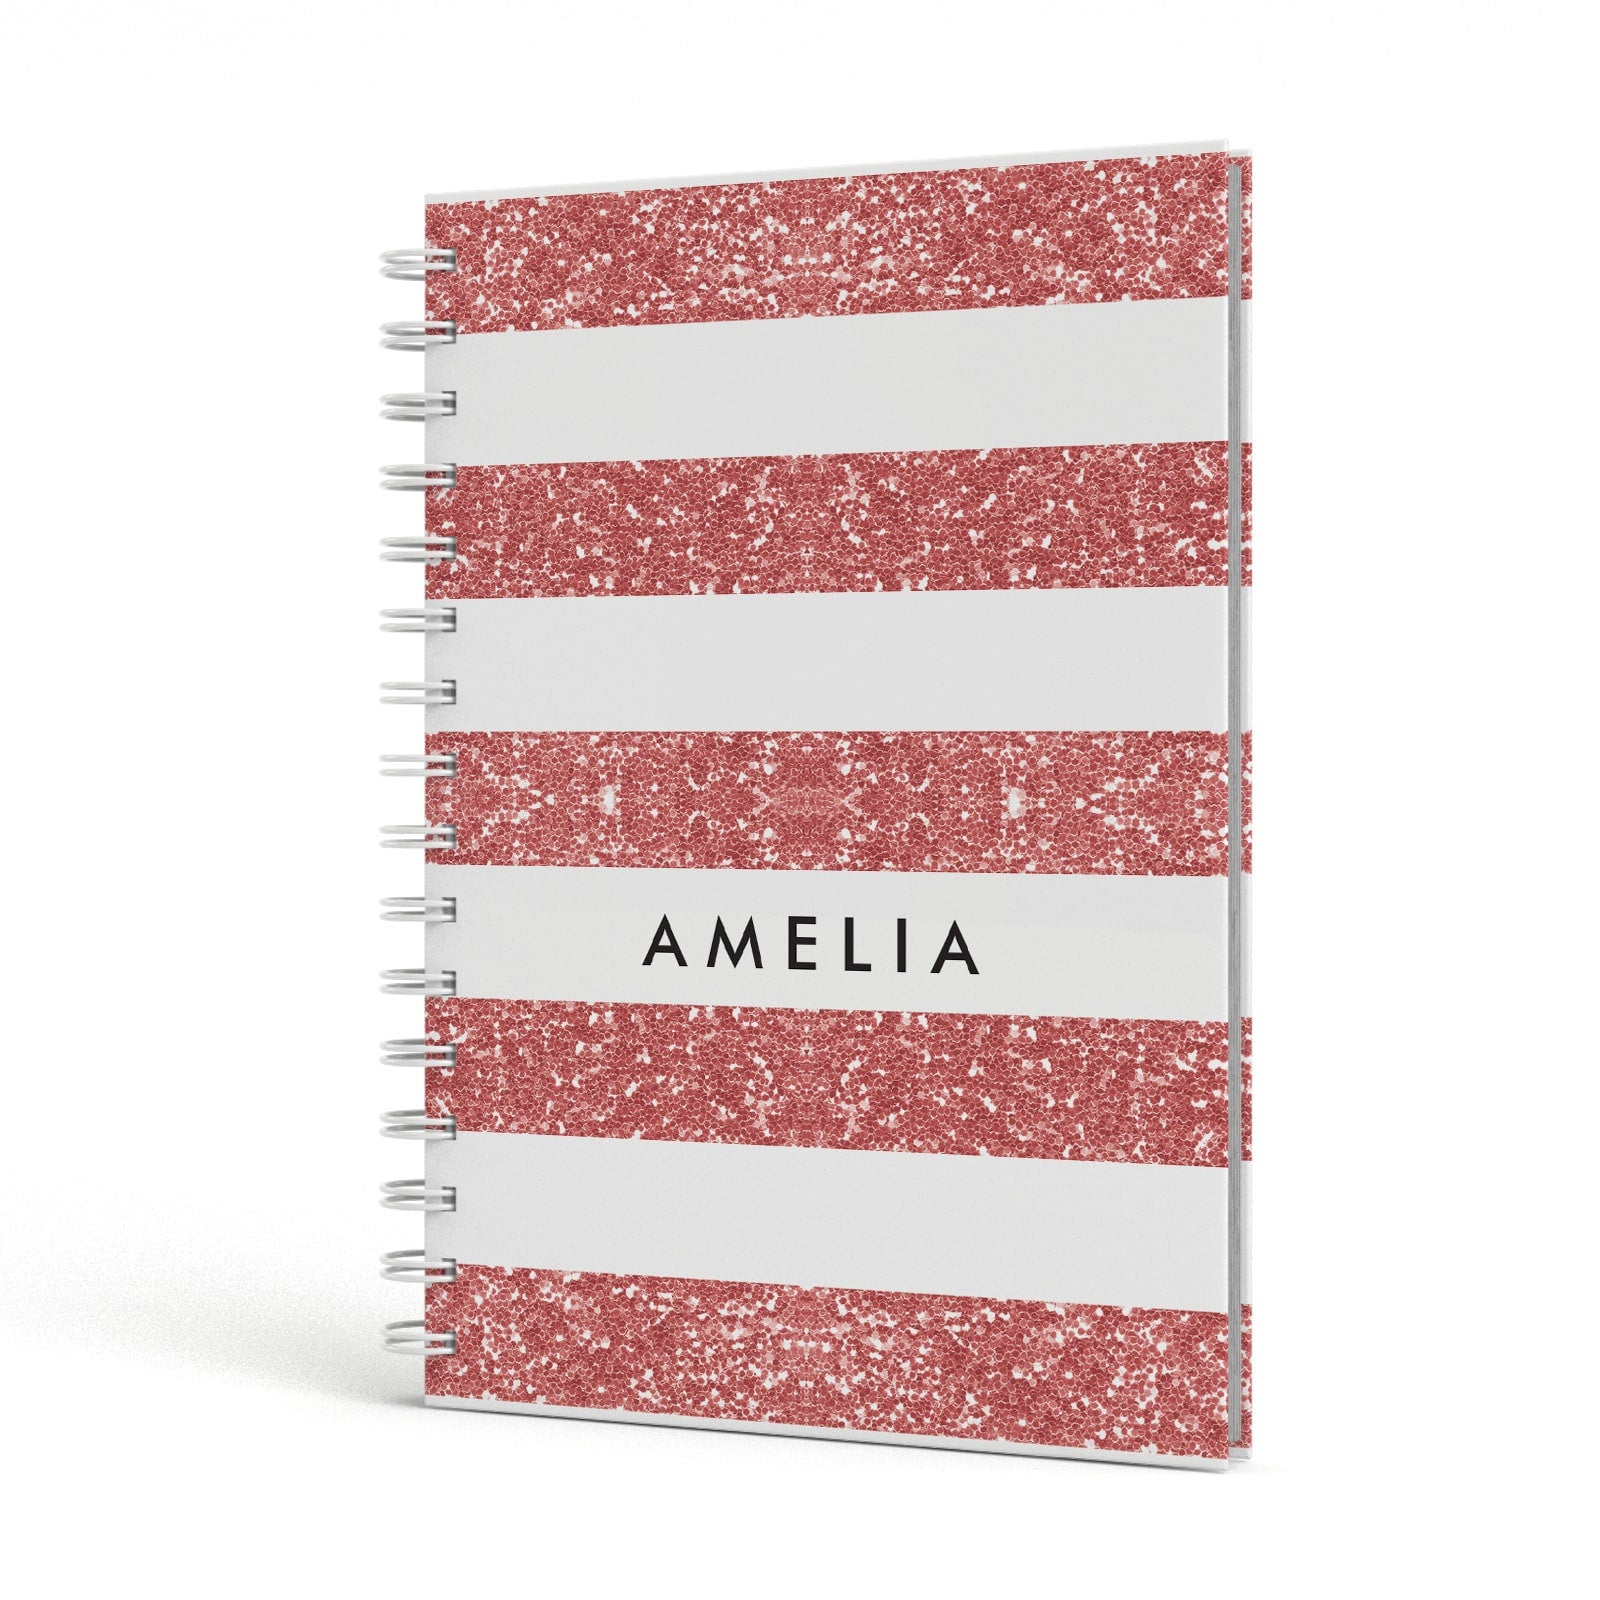 Personalised Glitter Effect Name Initials A5 Hardcover Notebook Side View